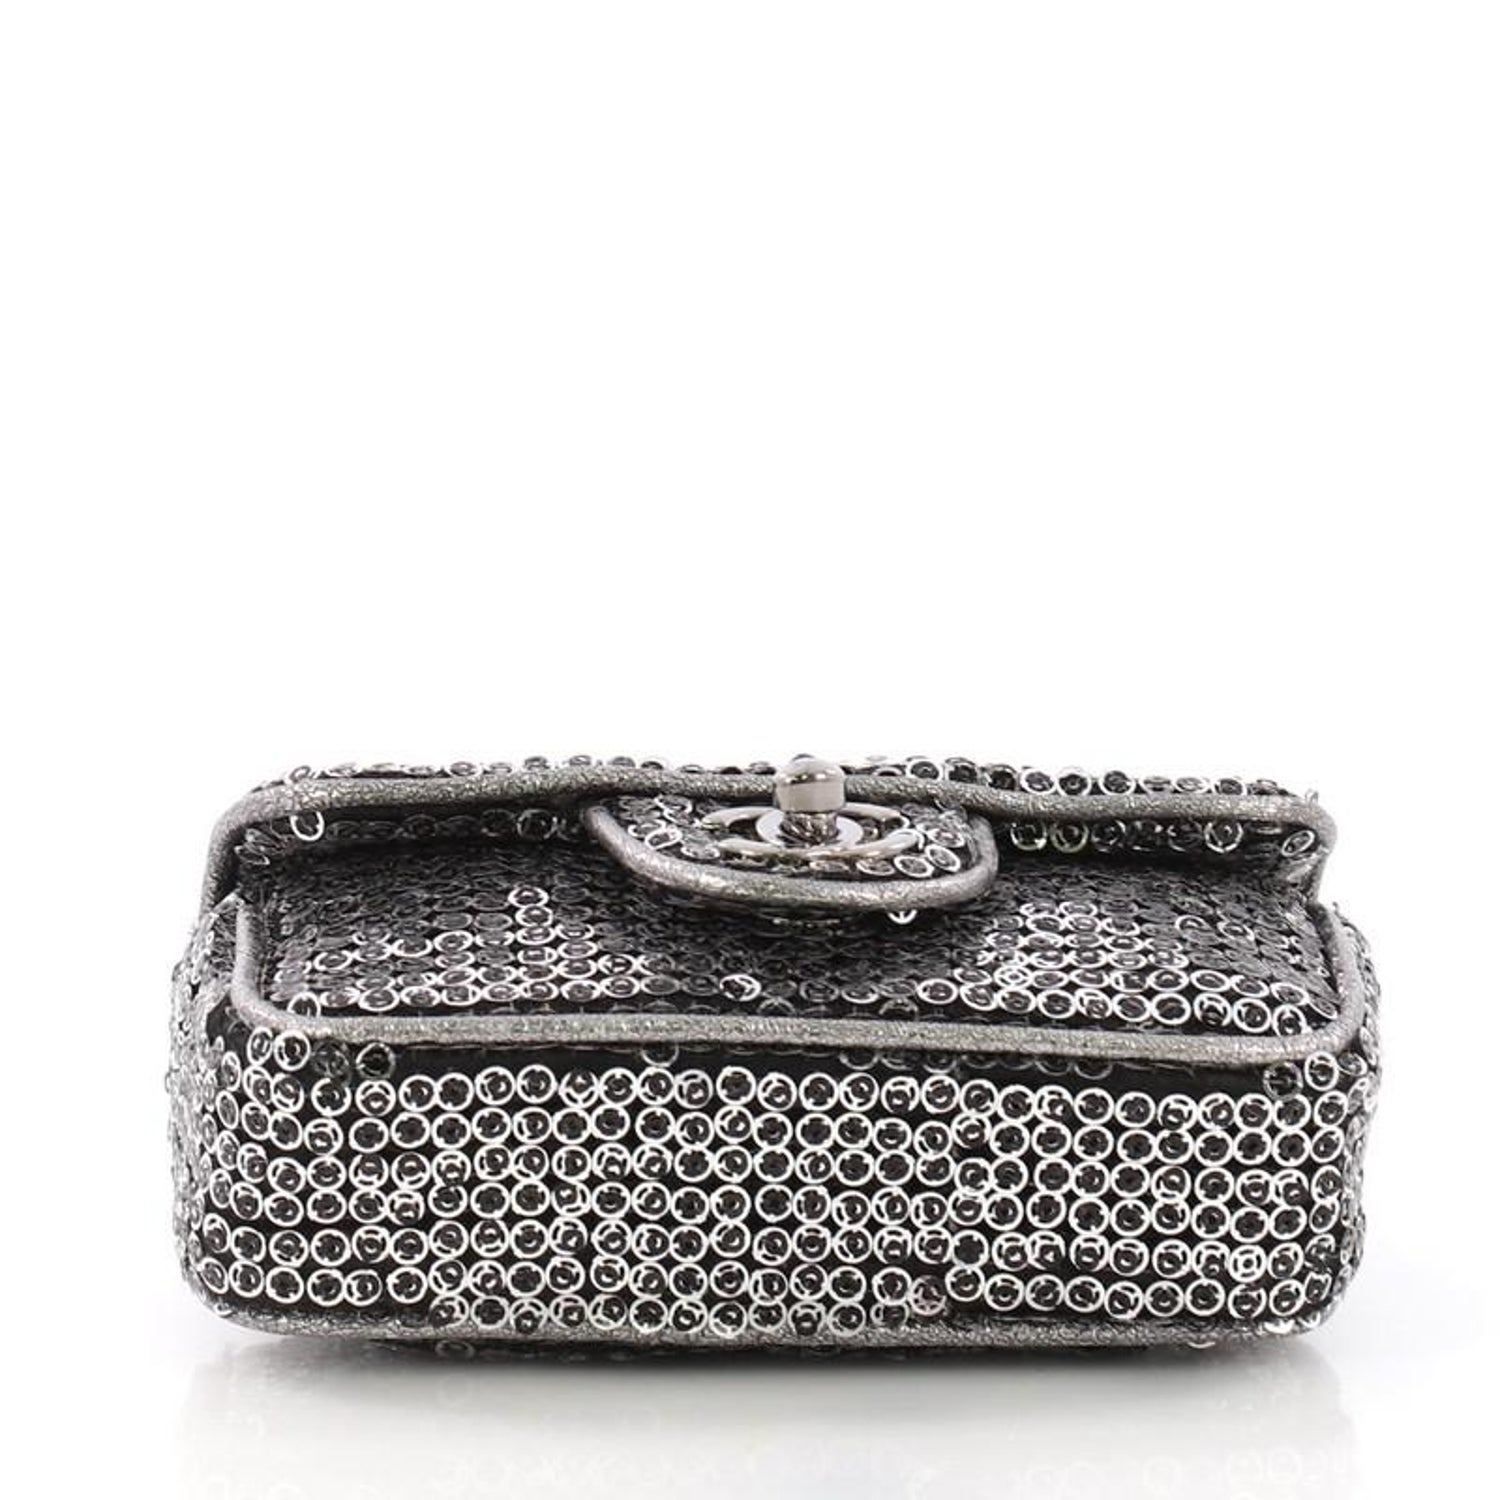 8dc8f0811450 Chanel Hidden Sequins Flap Bag Quilted Sequins Extra Mini at 1stdibs